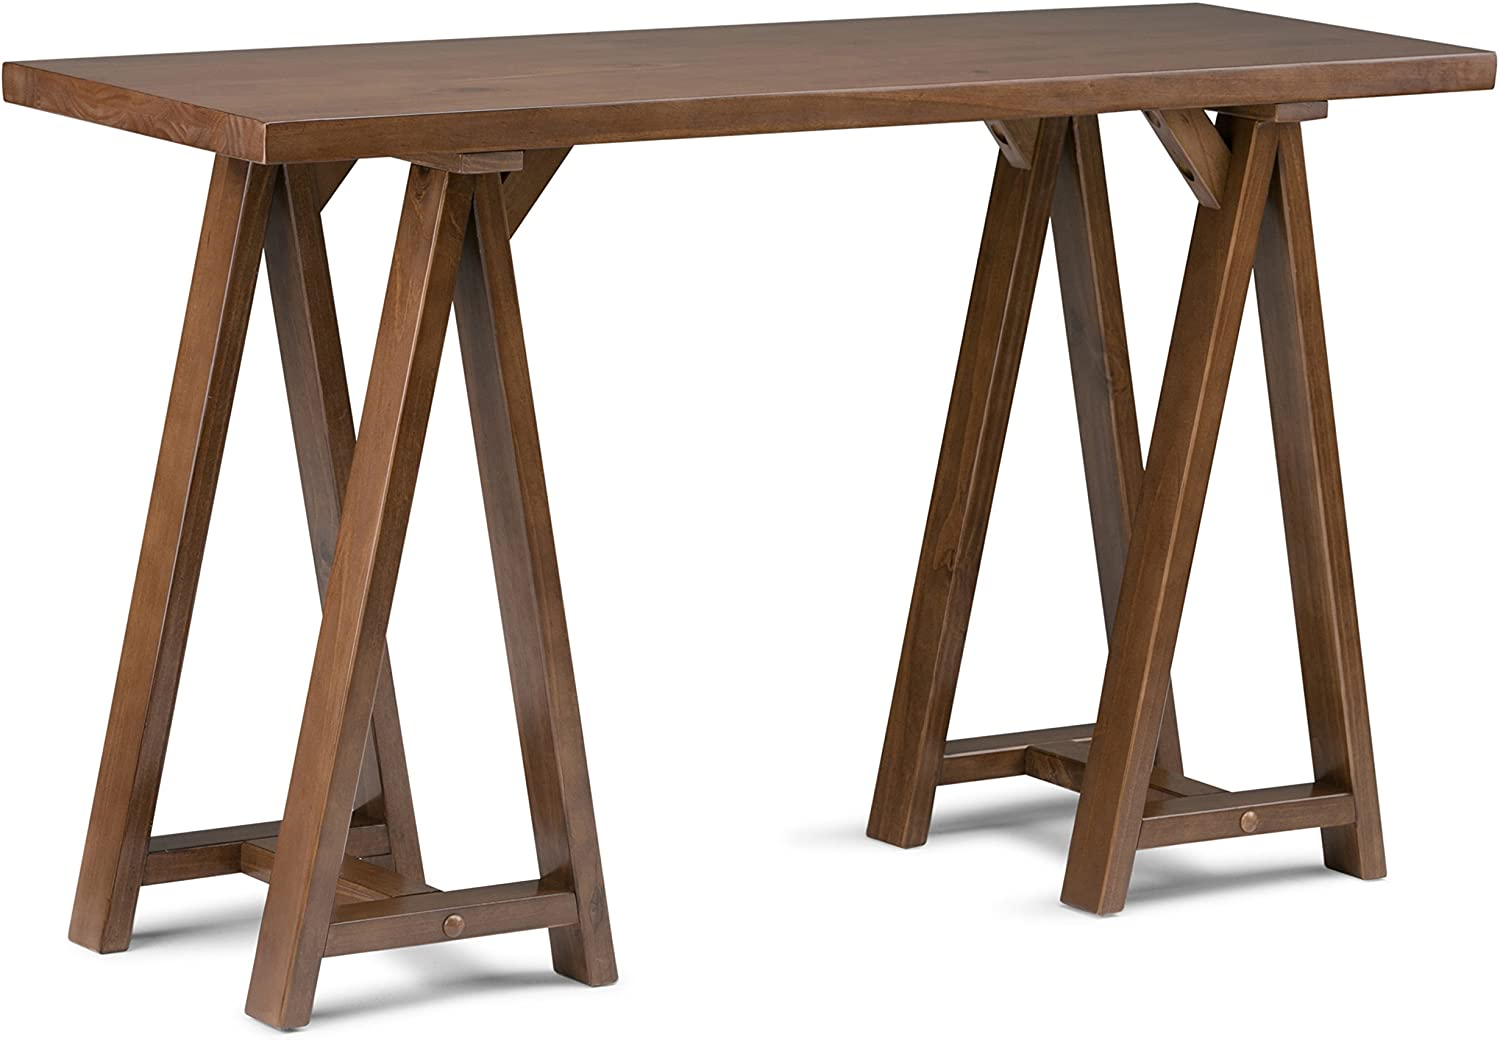 Simpli Home 3AXCSAW-03 Sawhorse Solid Wood 50 inch Wide Modern Industrial Console Sofa Table in Medium Saddle Brown